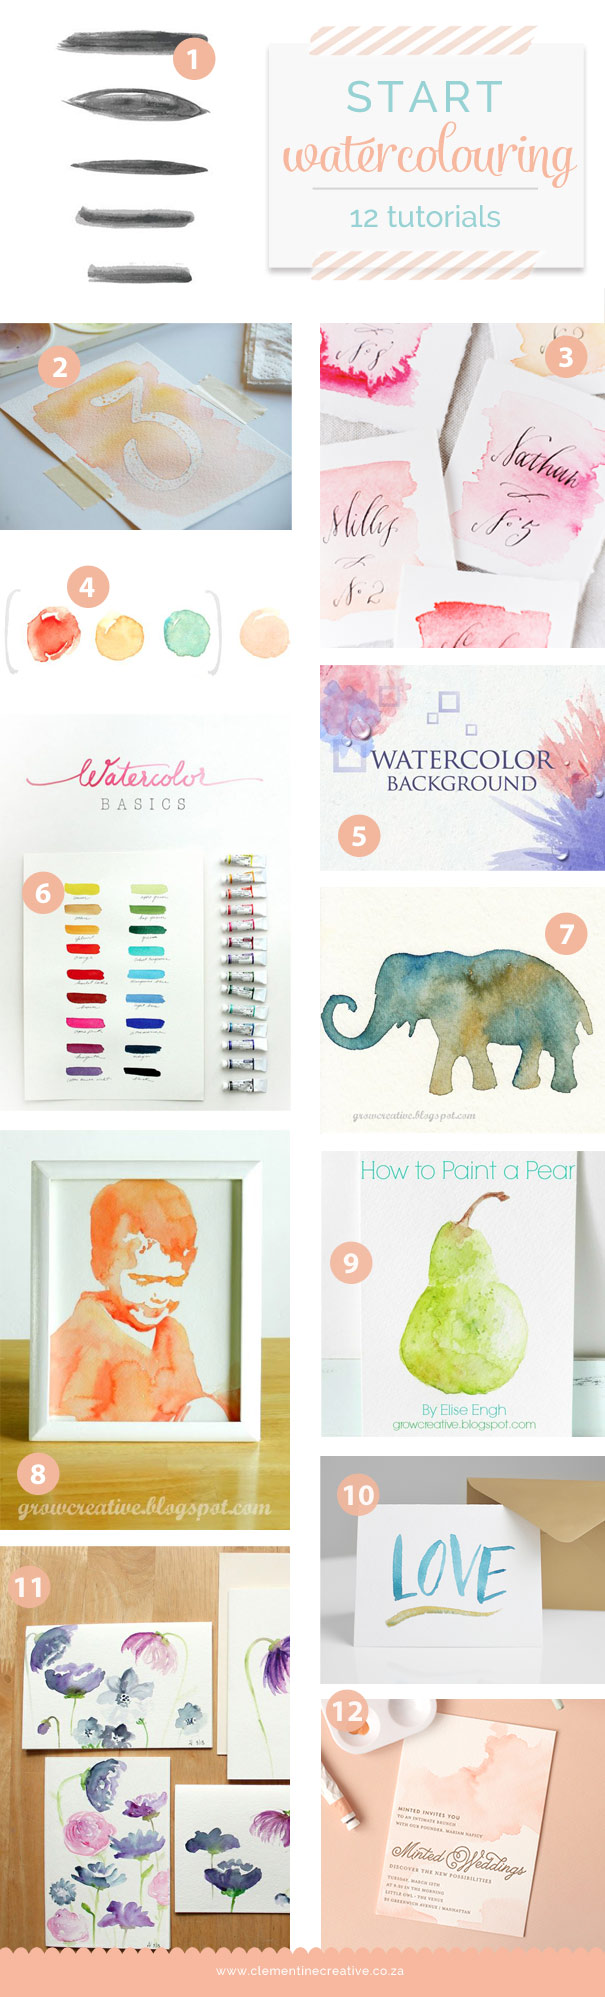 12 easy watercolour painting tutorials for beginners for How to use watercolors for beginners